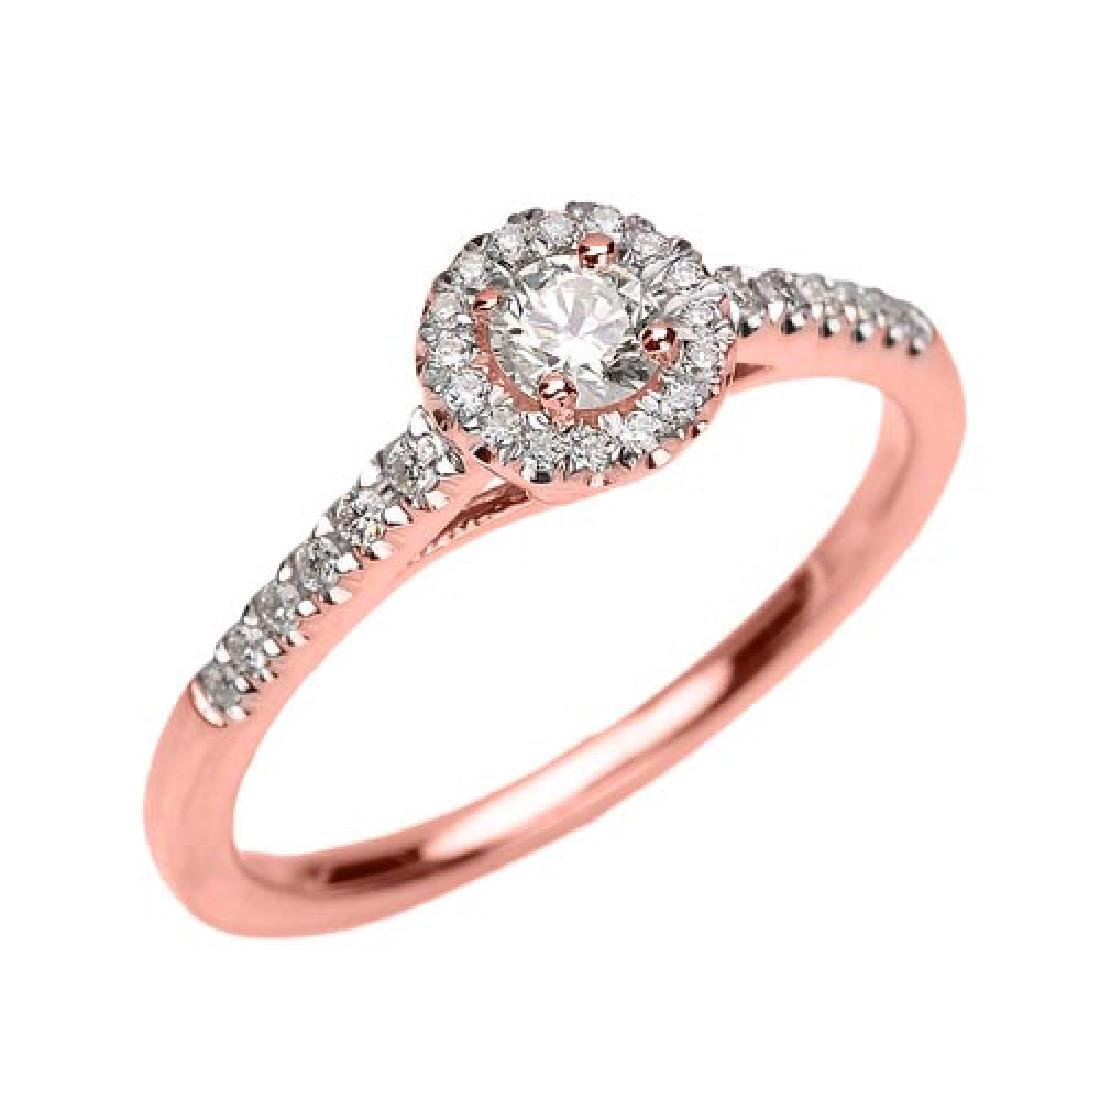 10k Rose Gold Diamond and White Topaz Dainty Engagement